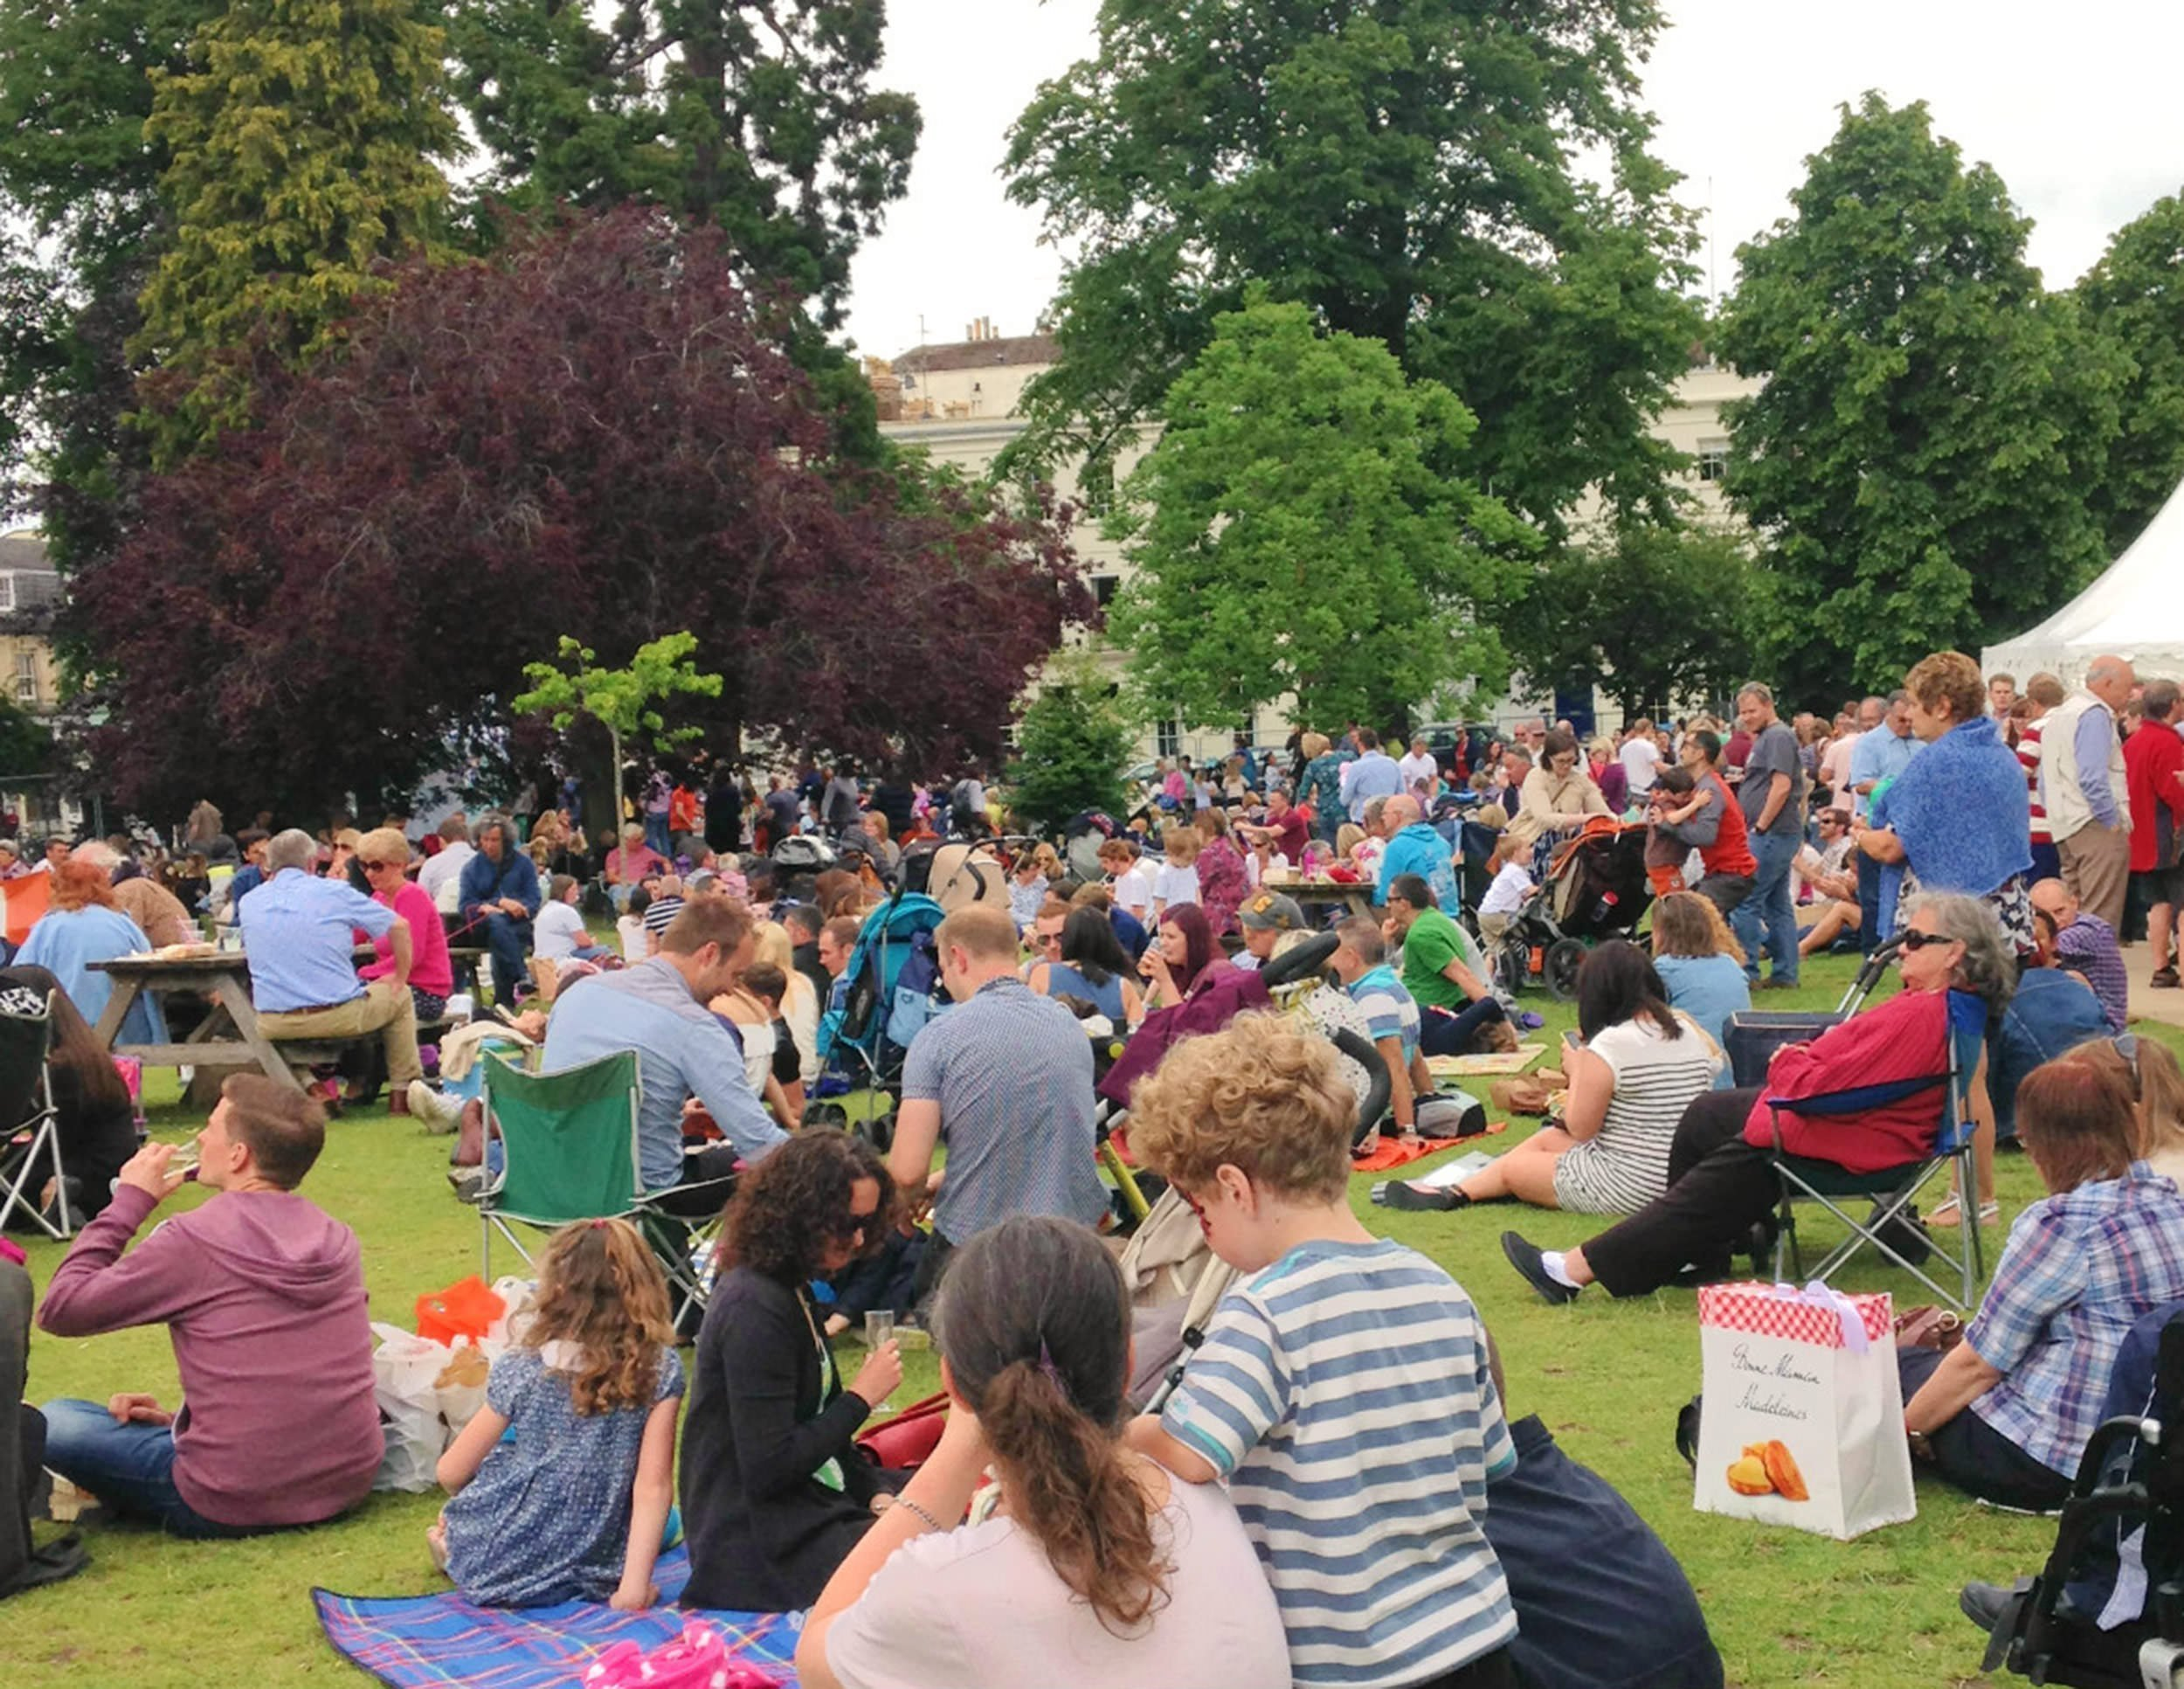 groups-of-people-sitting-on-the-grass-in-the-sun-enjoying-food-and-drink-from-the-festival